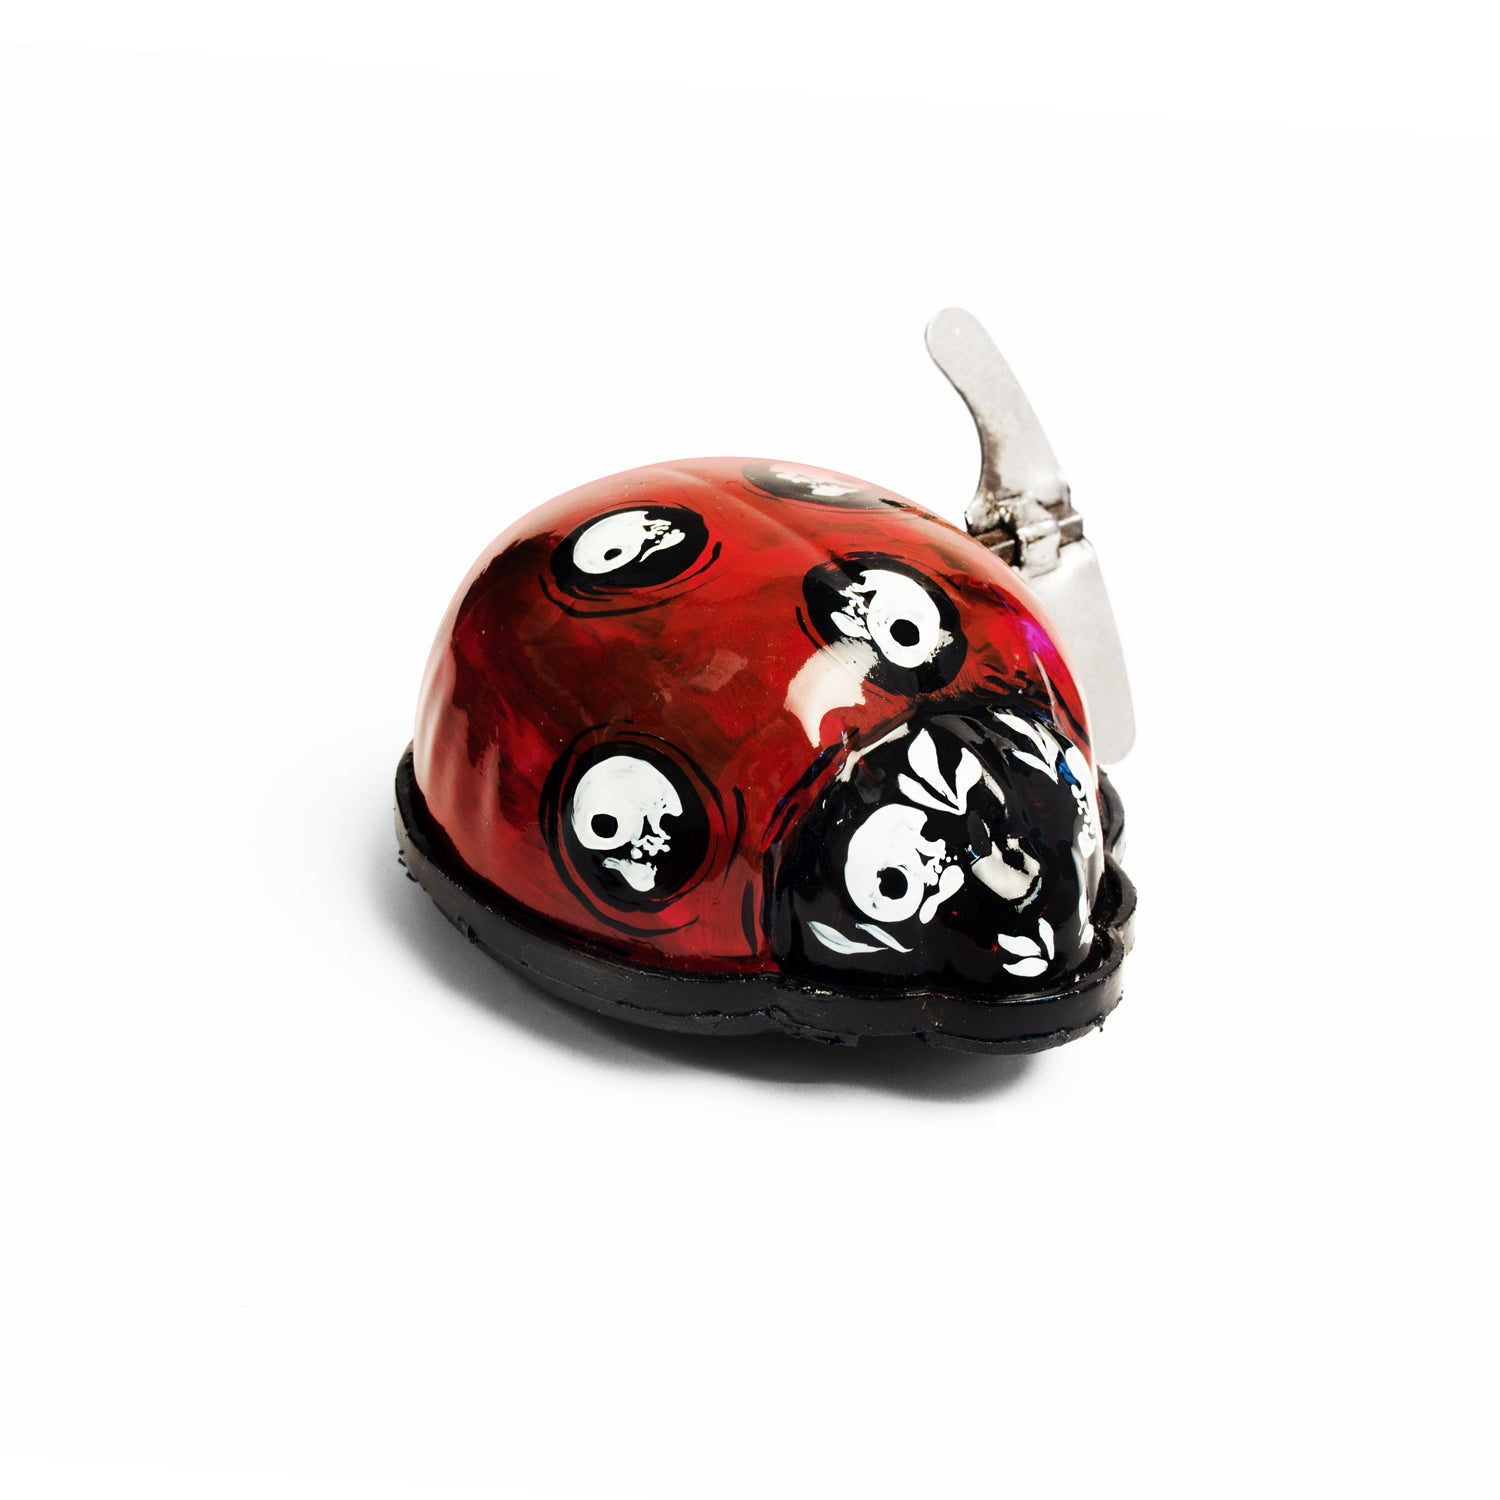 Wind-up tinplate ladybird